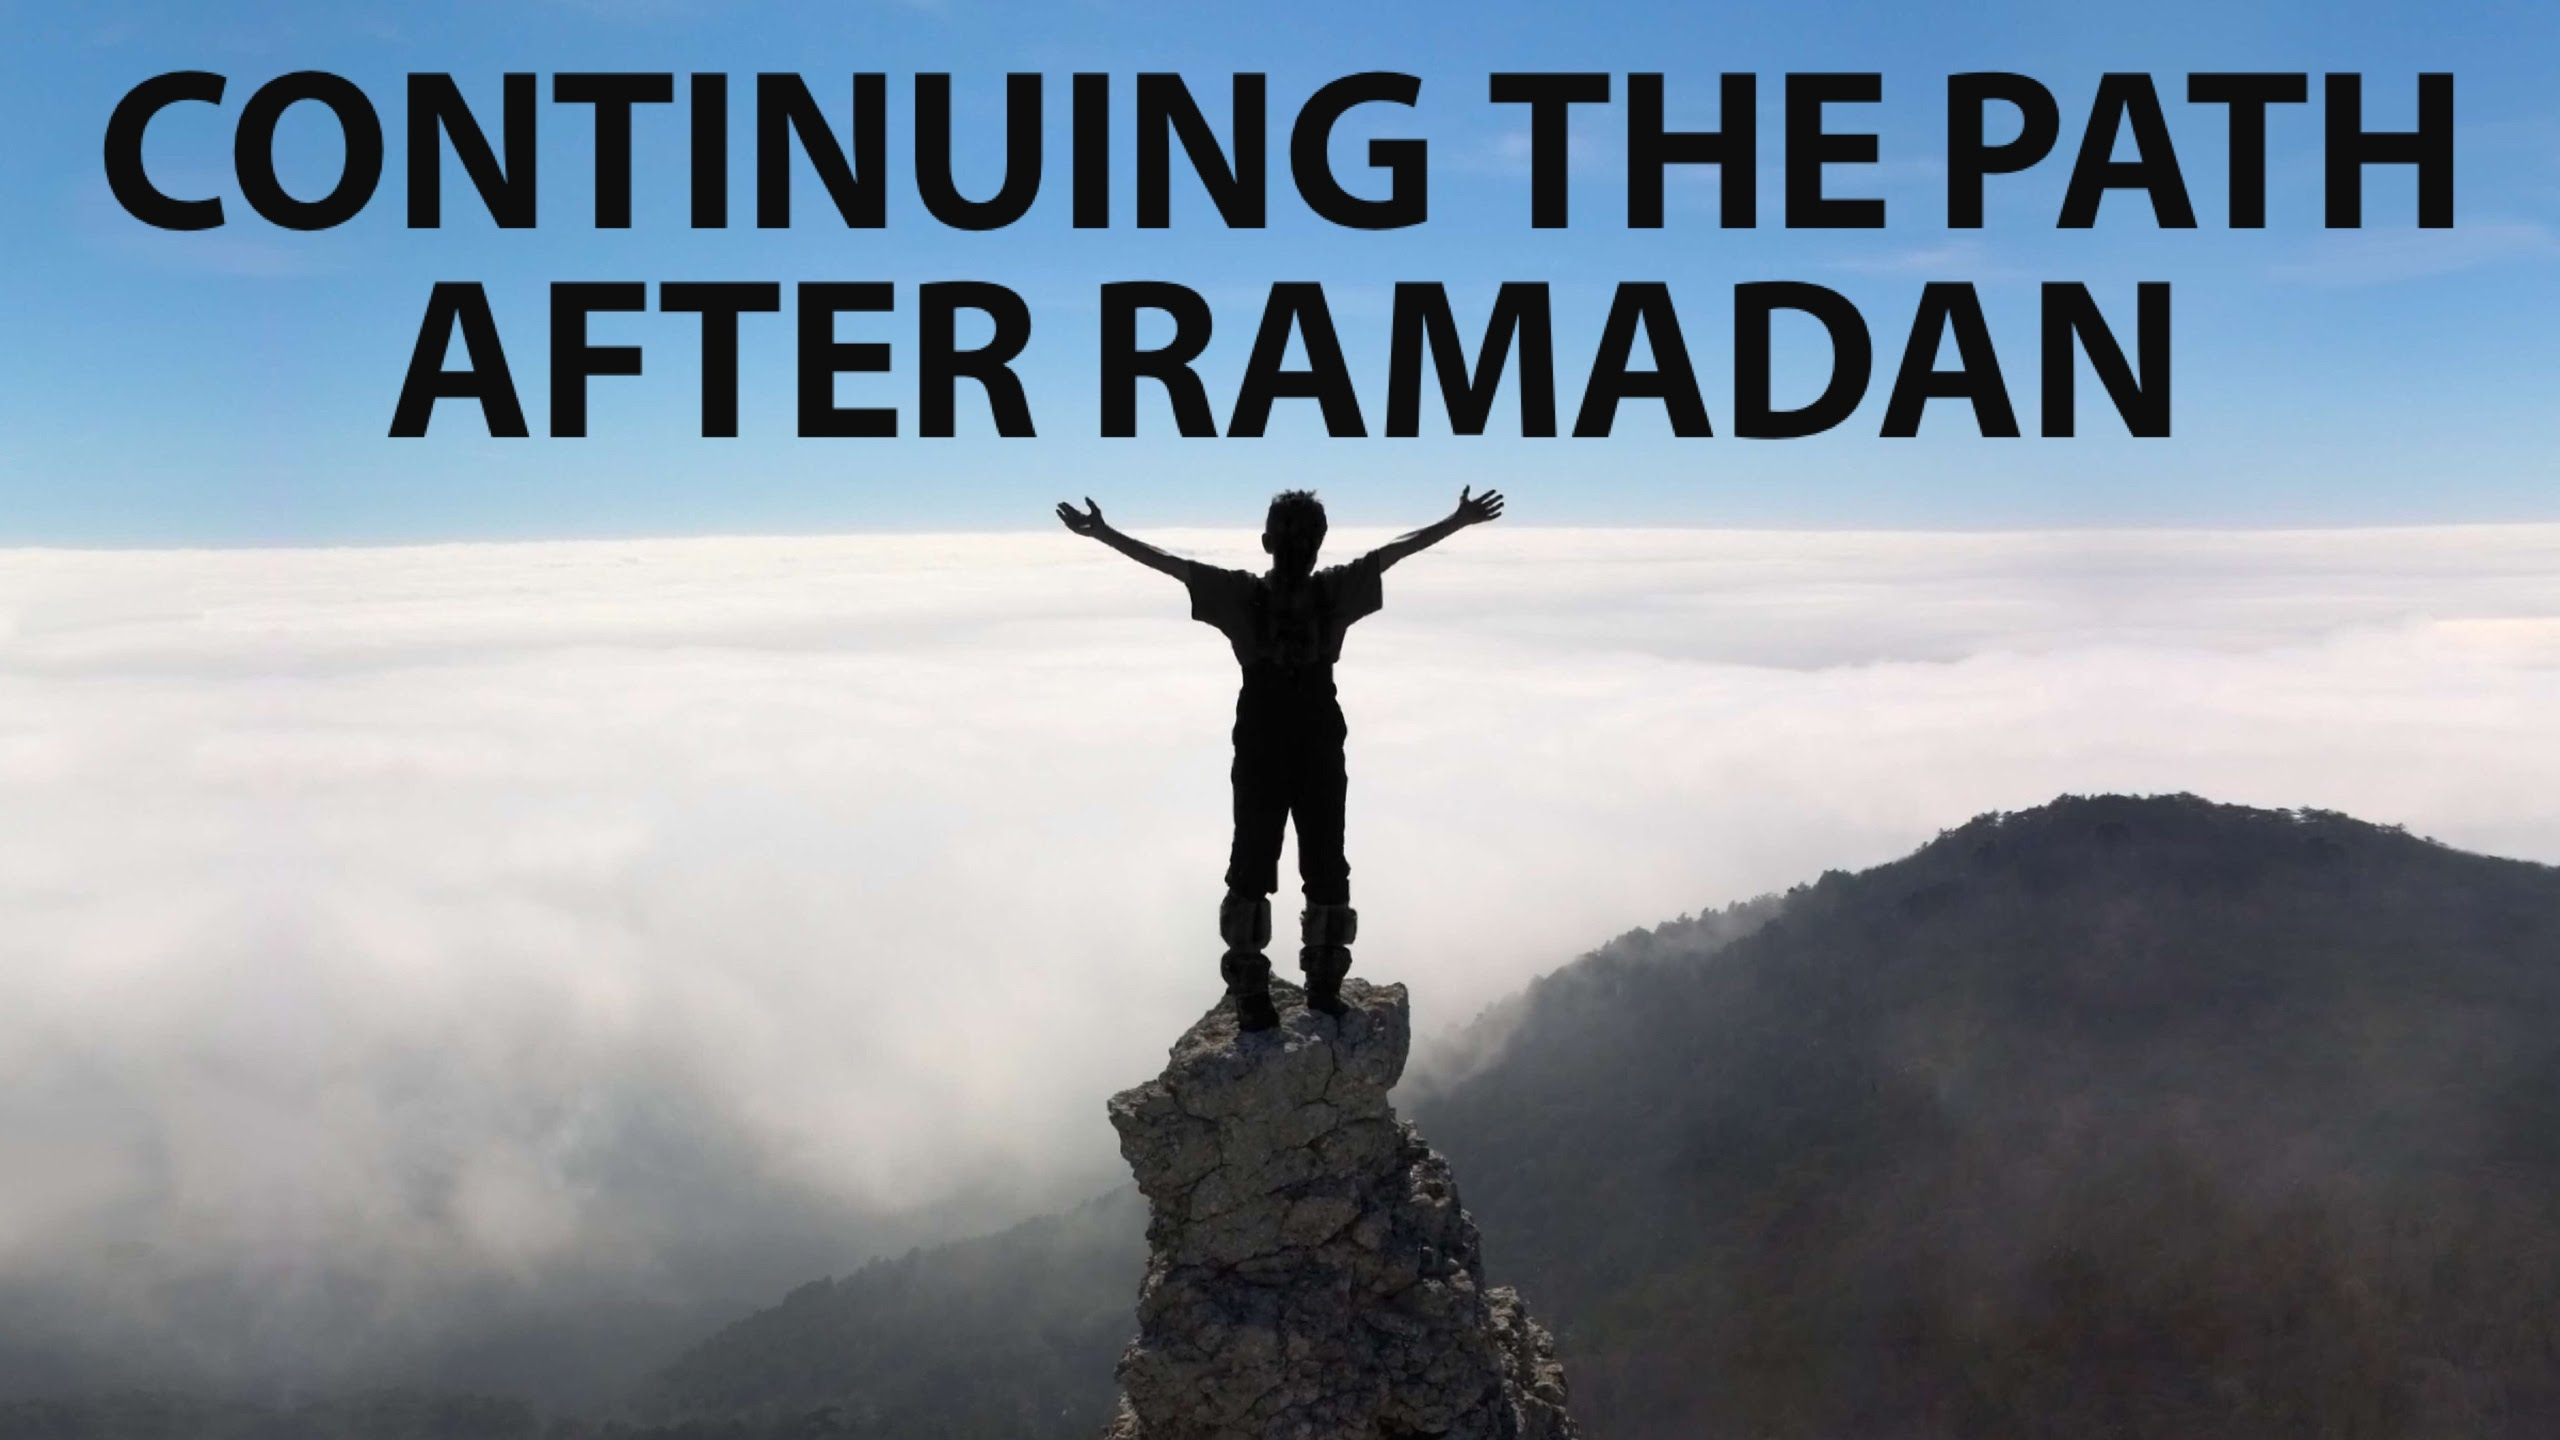 how can i continue after ramadan